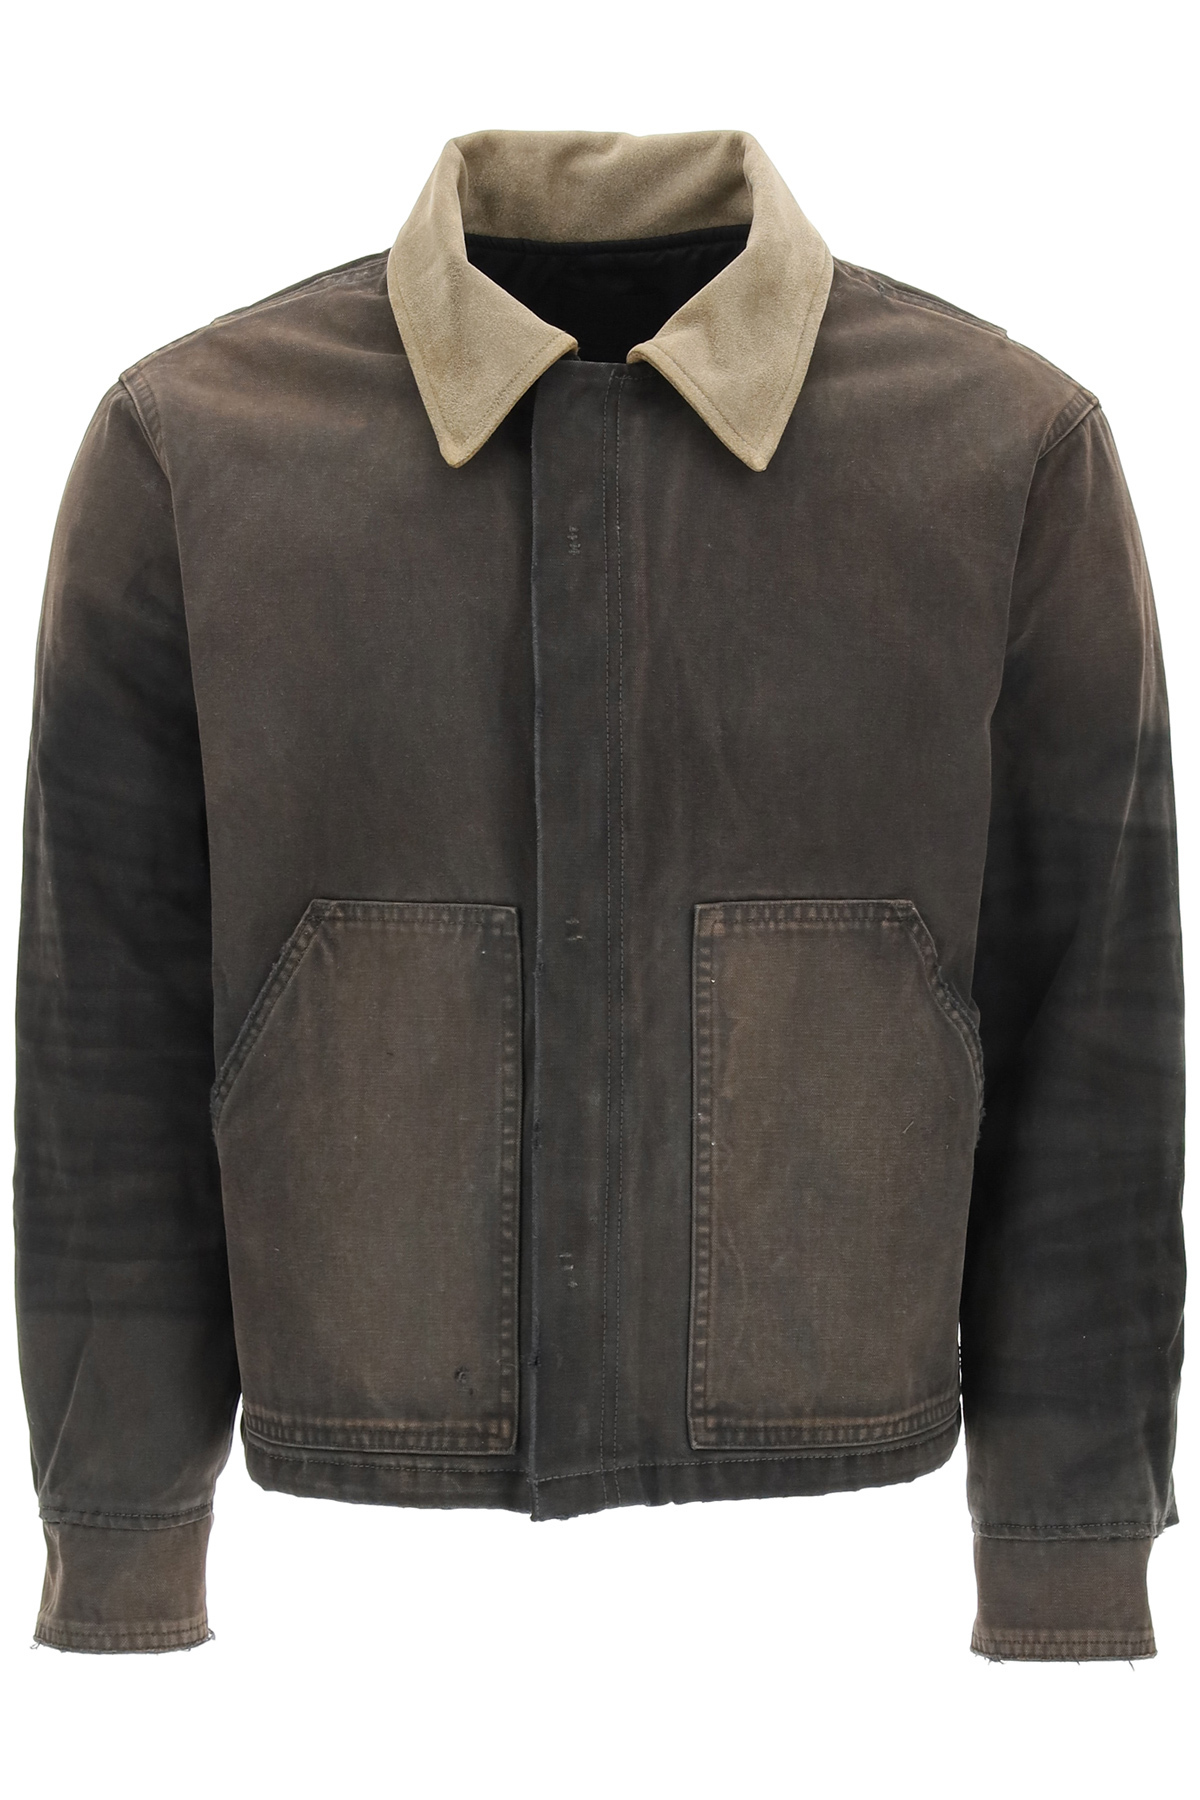 Fear of god jacket vintage in canvas